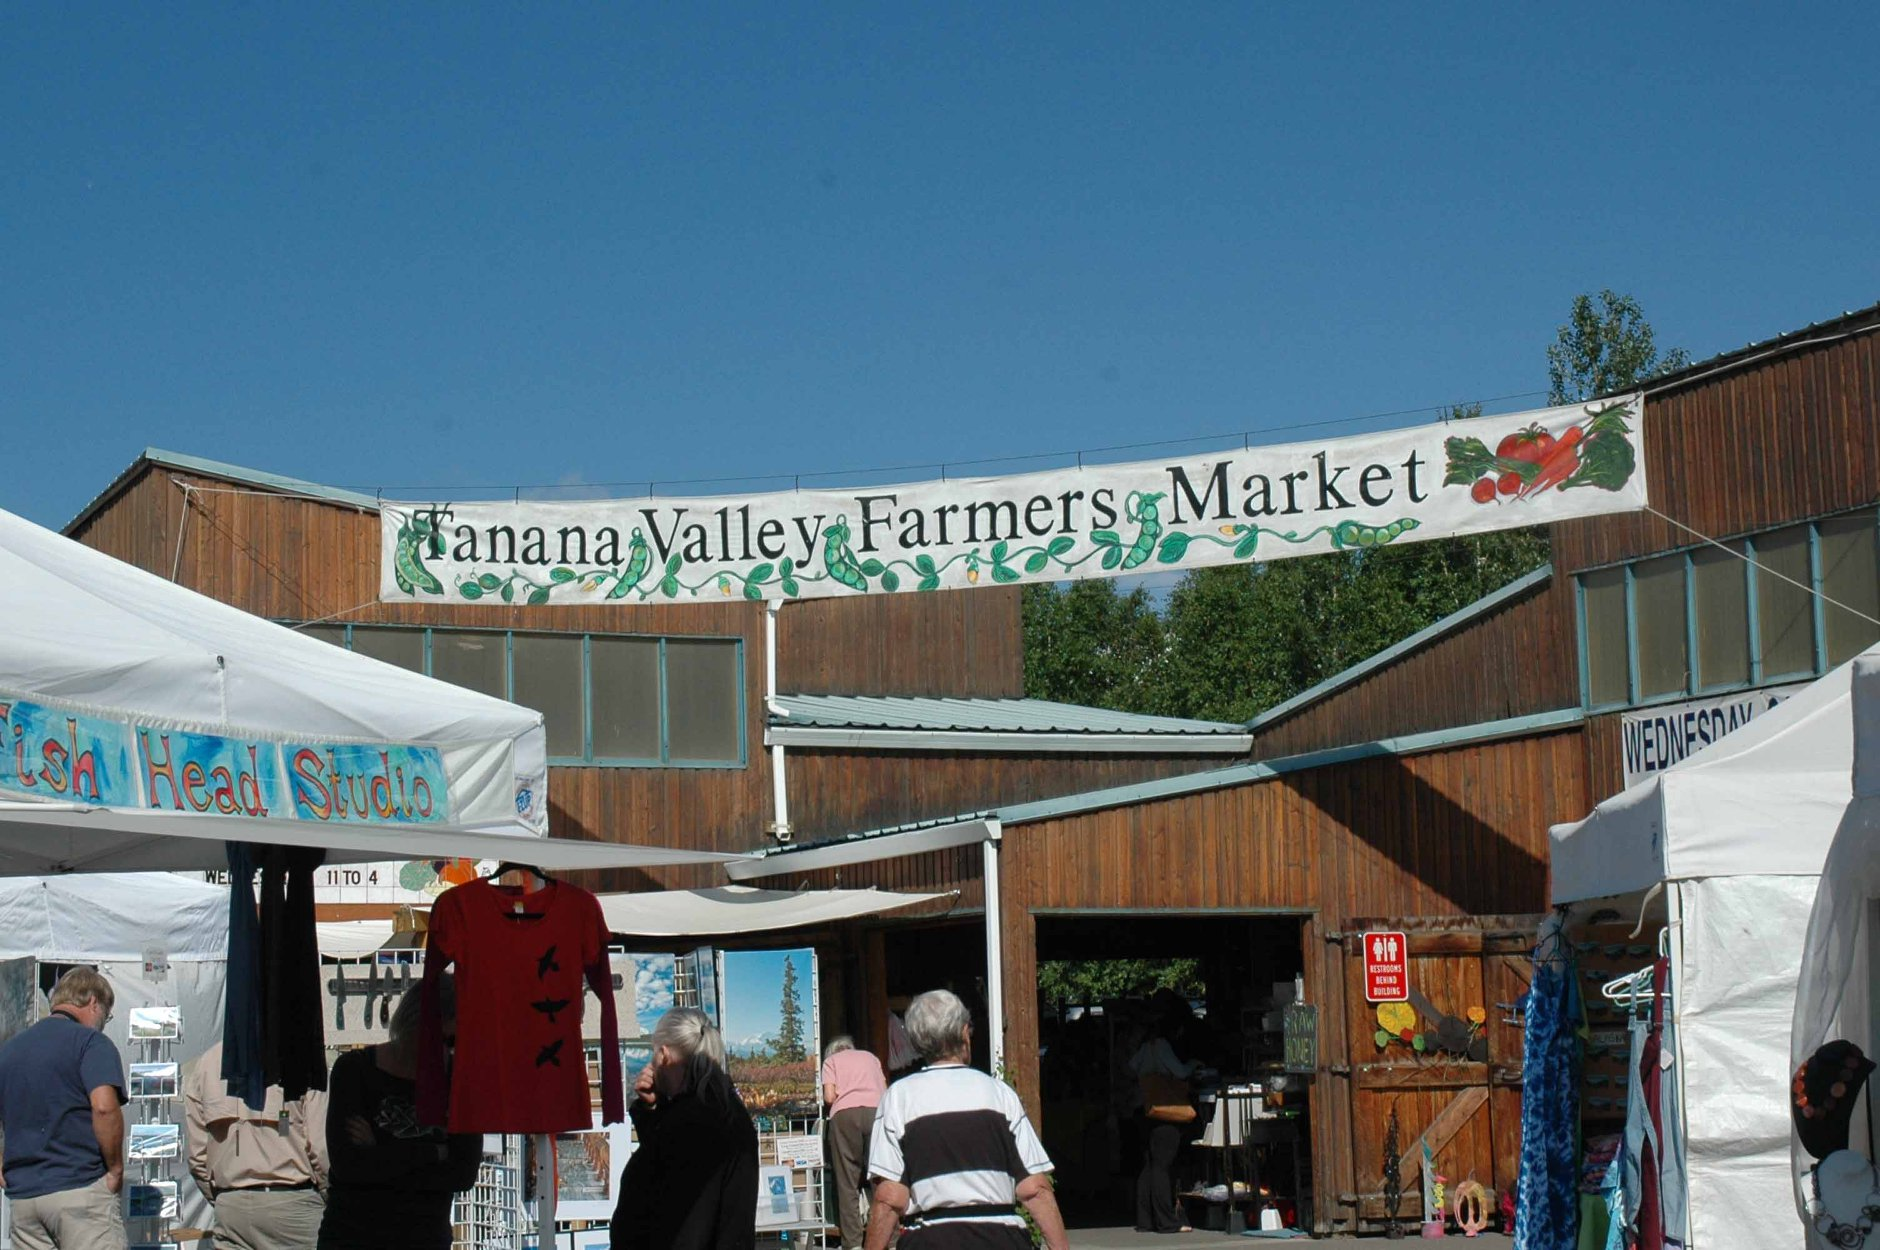 Best Summer Market in Alaska-Tanana Valley Farmers Market, Fairbanks, Alaska